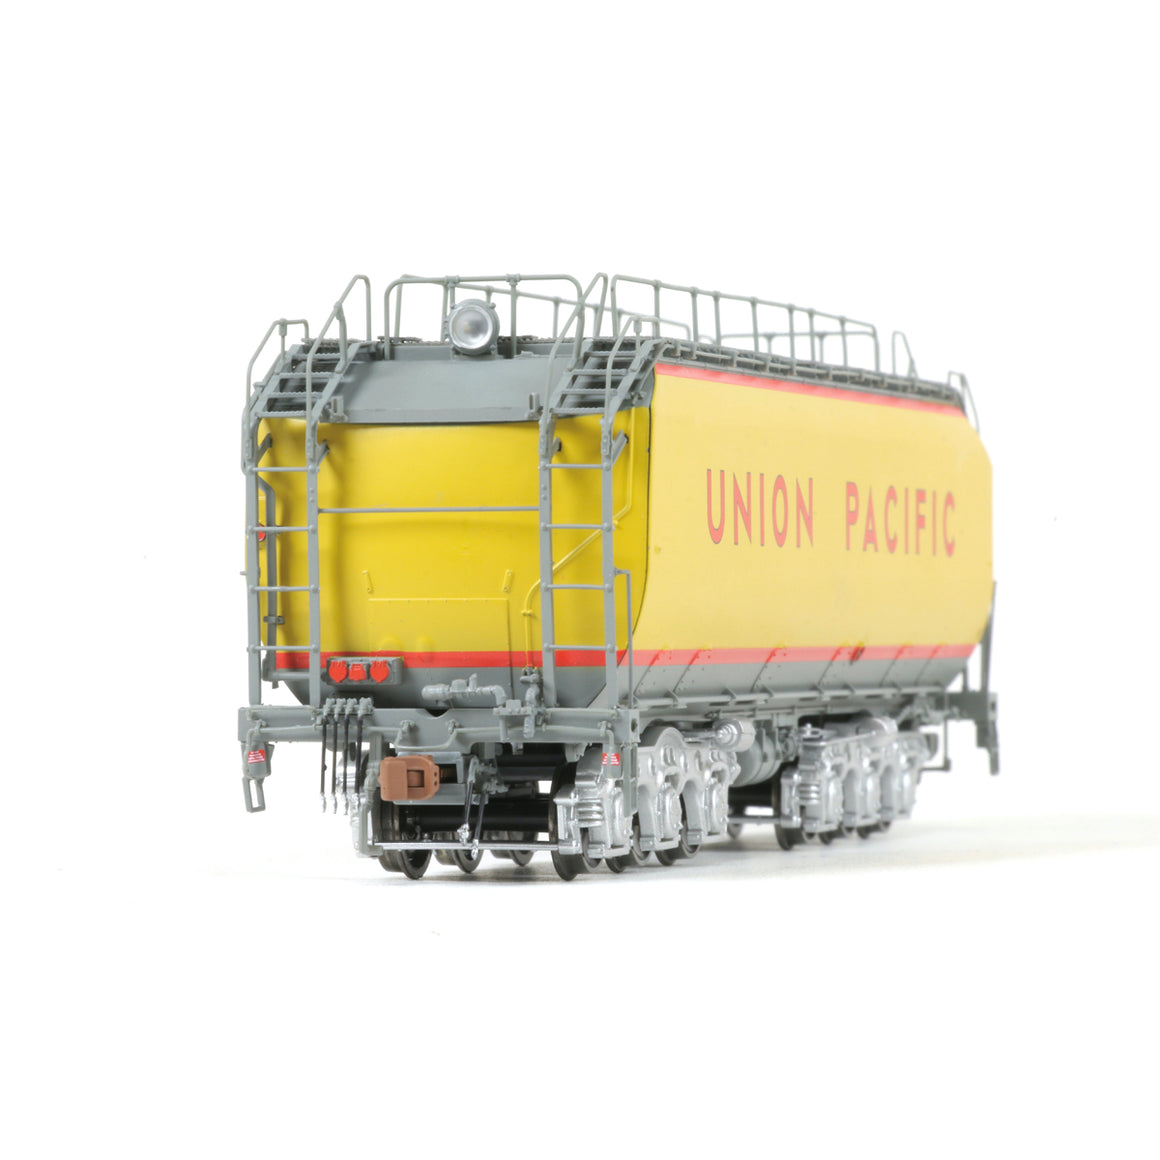 HO Scale: Rivet Counter: Union Pacific 24C Fuel Tender - No Number